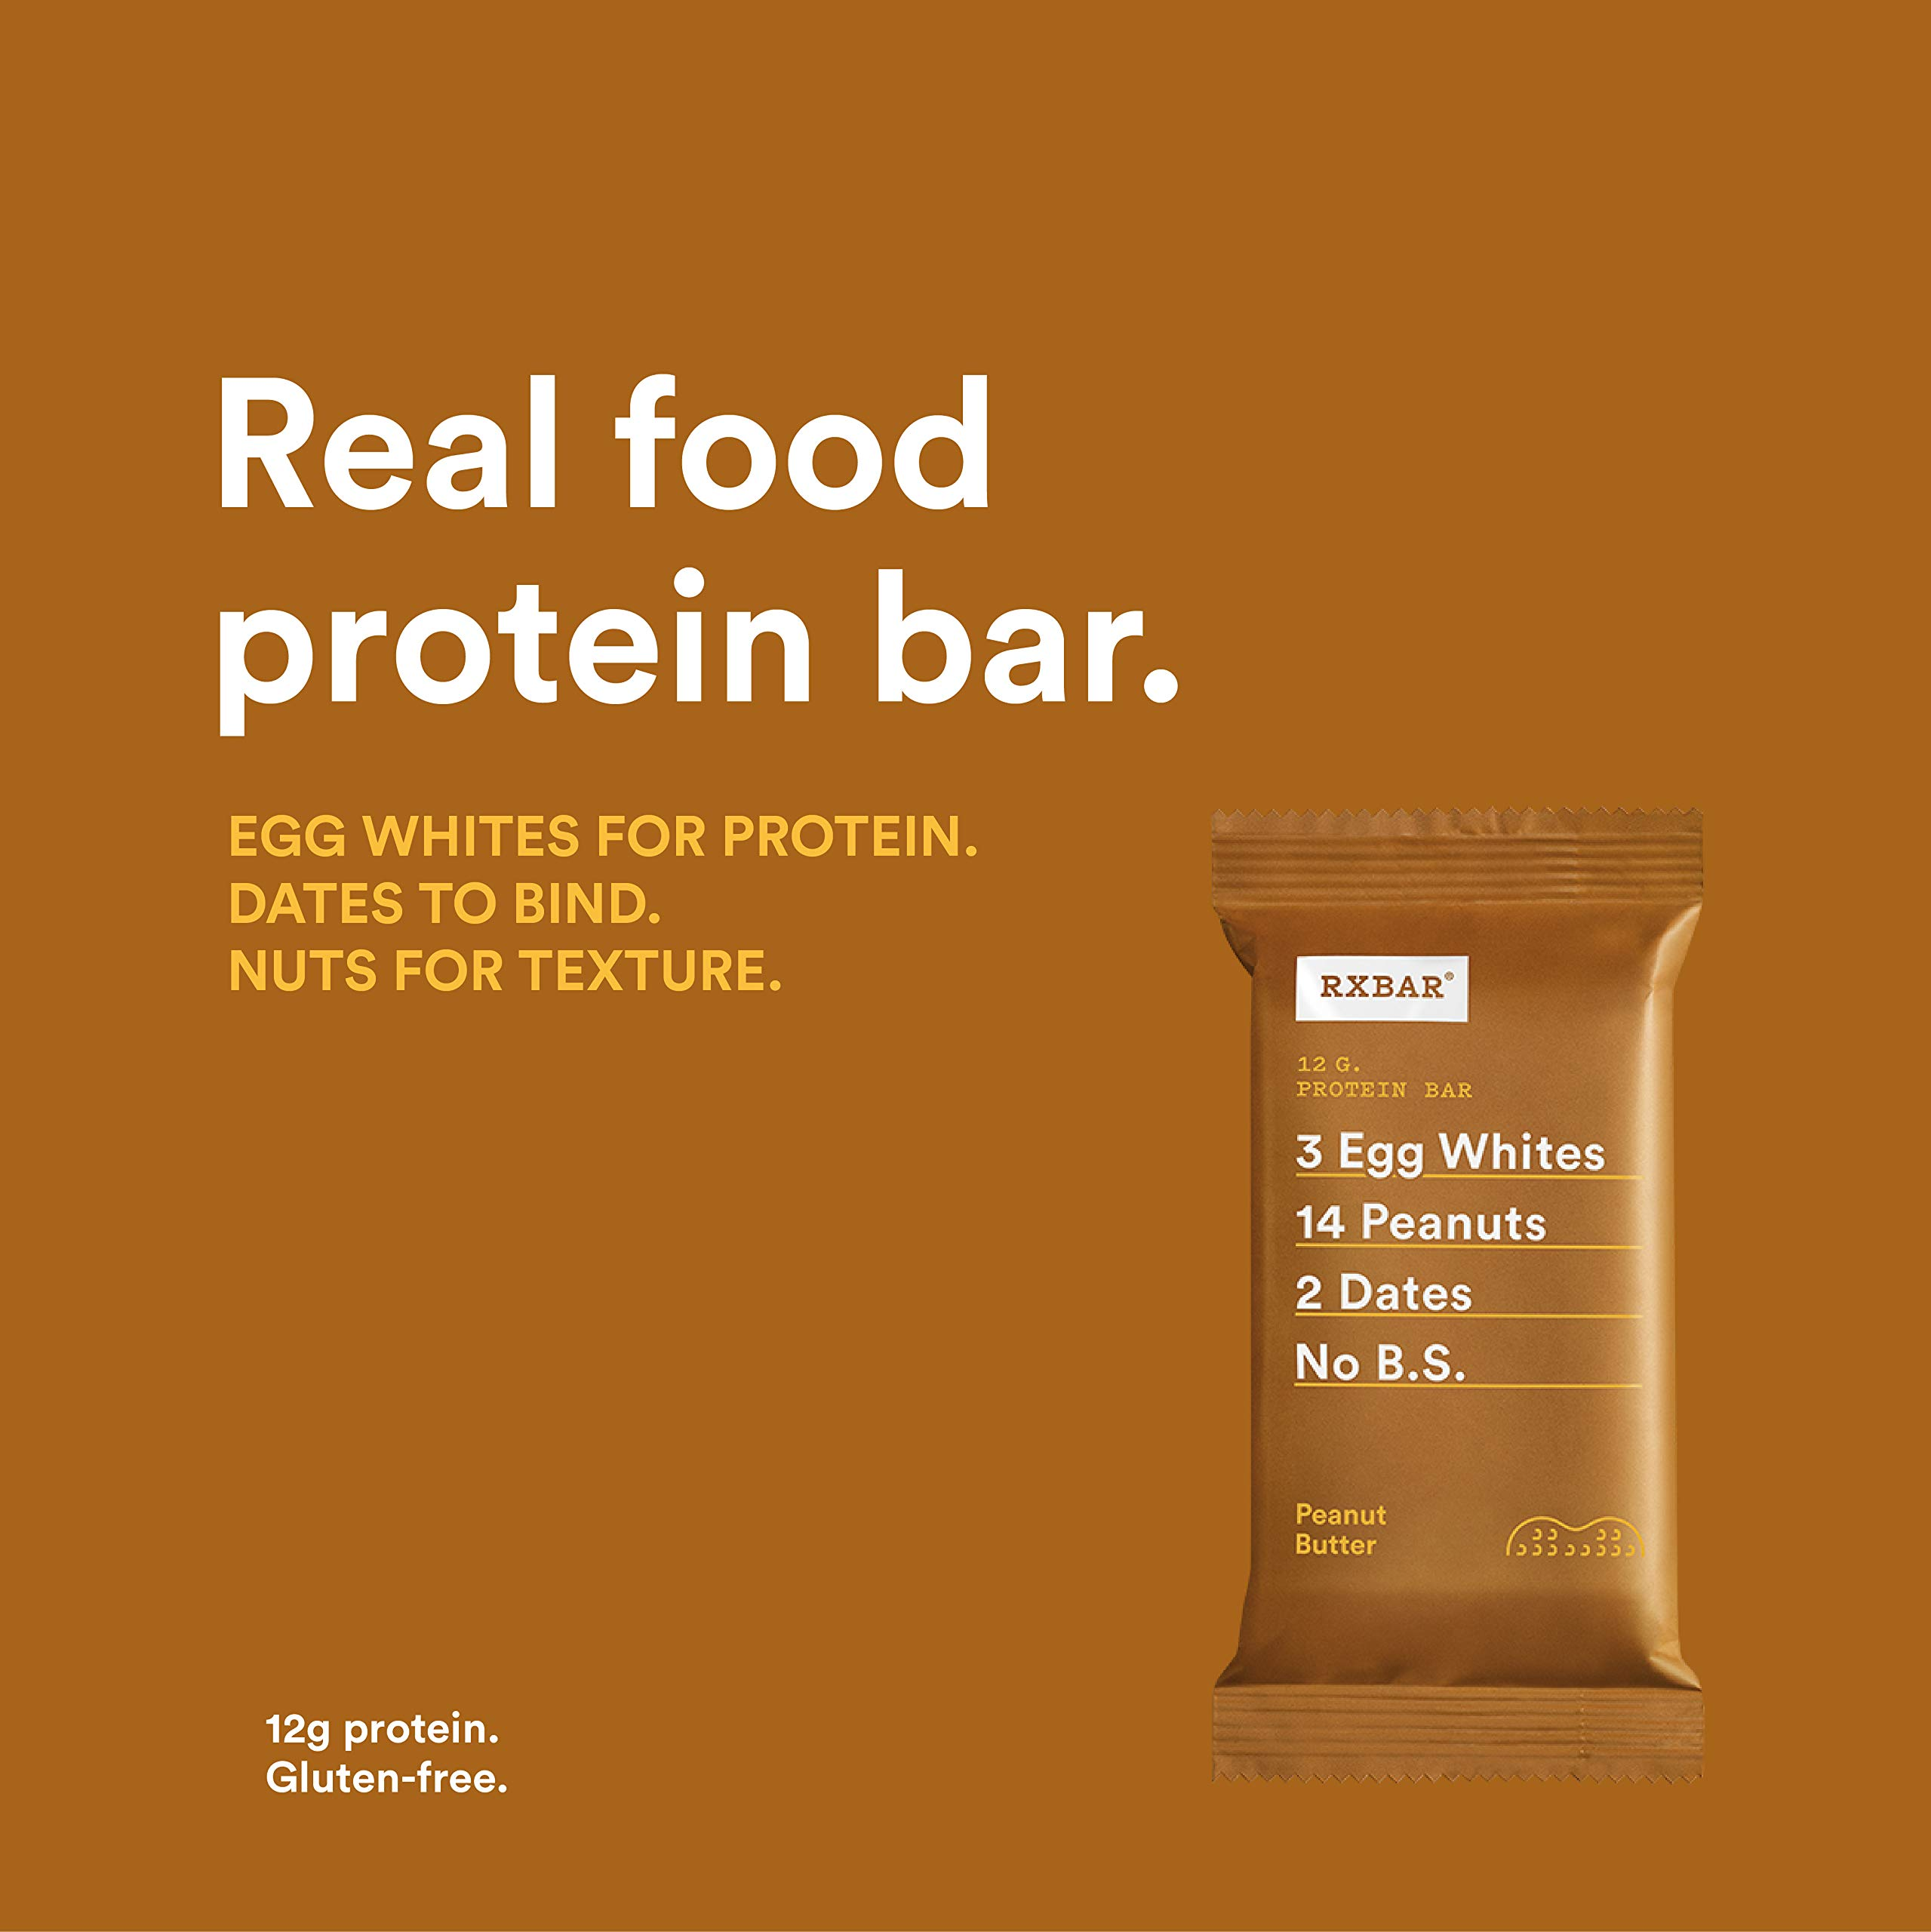 RXBAR Whole Food Protein Bar, Peanut Butter, 1.83 Ounce (Pack of 24) by RXBAR (Image #3)